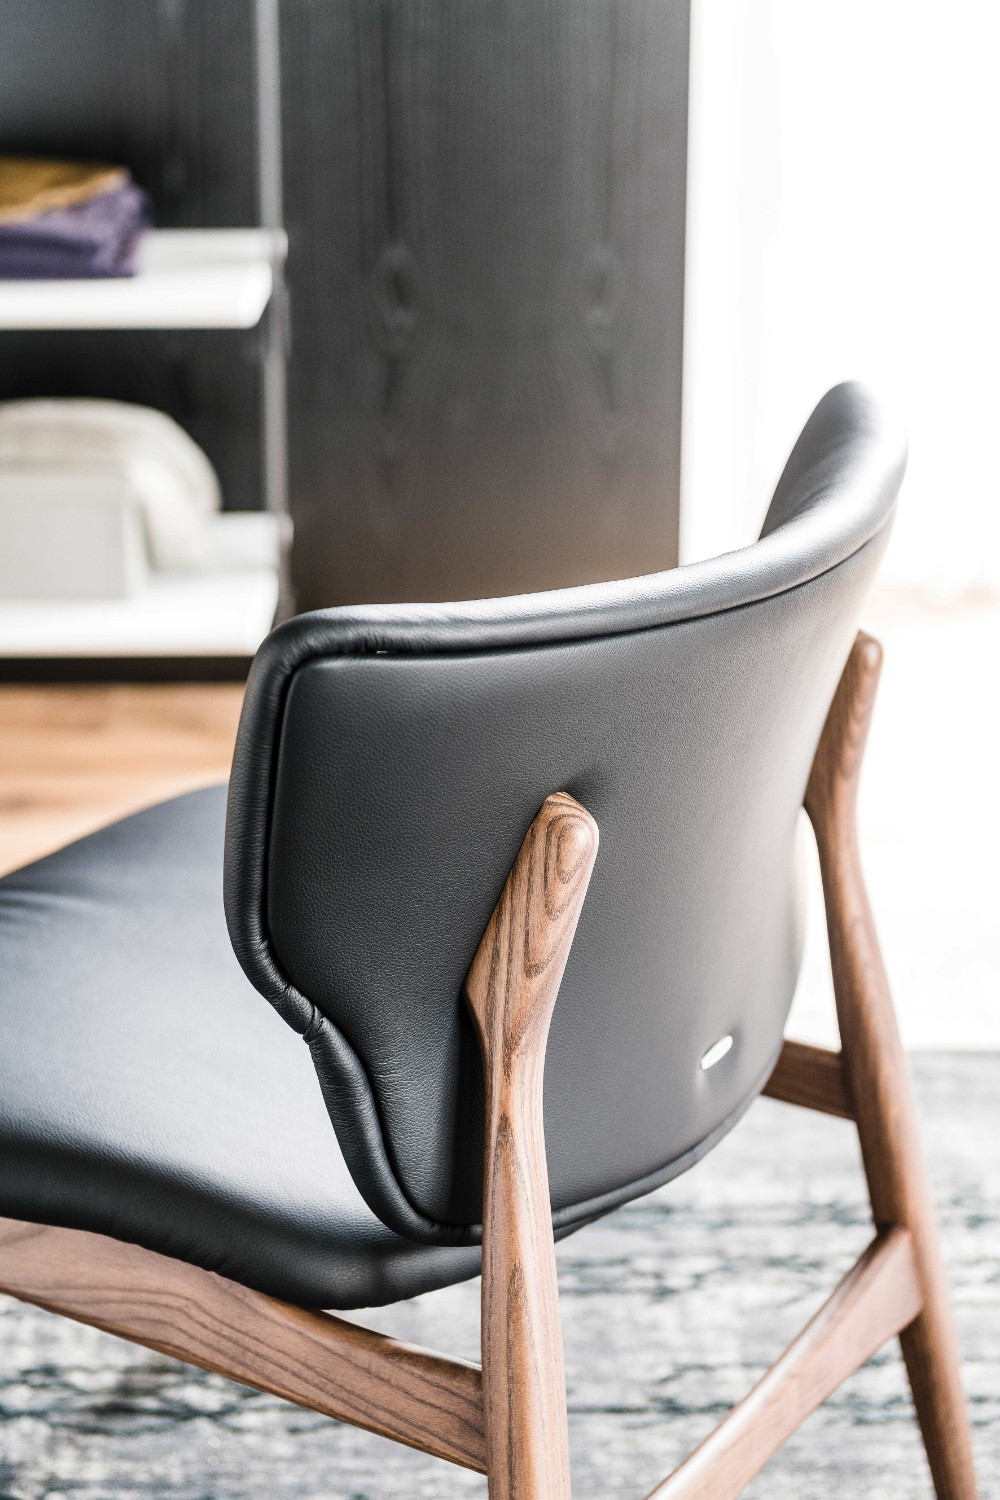 Sensational Dumbo Lounge Armchair Cattelan Italia Caraccident5 Cool Chair Designs And Ideas Caraccident5Info